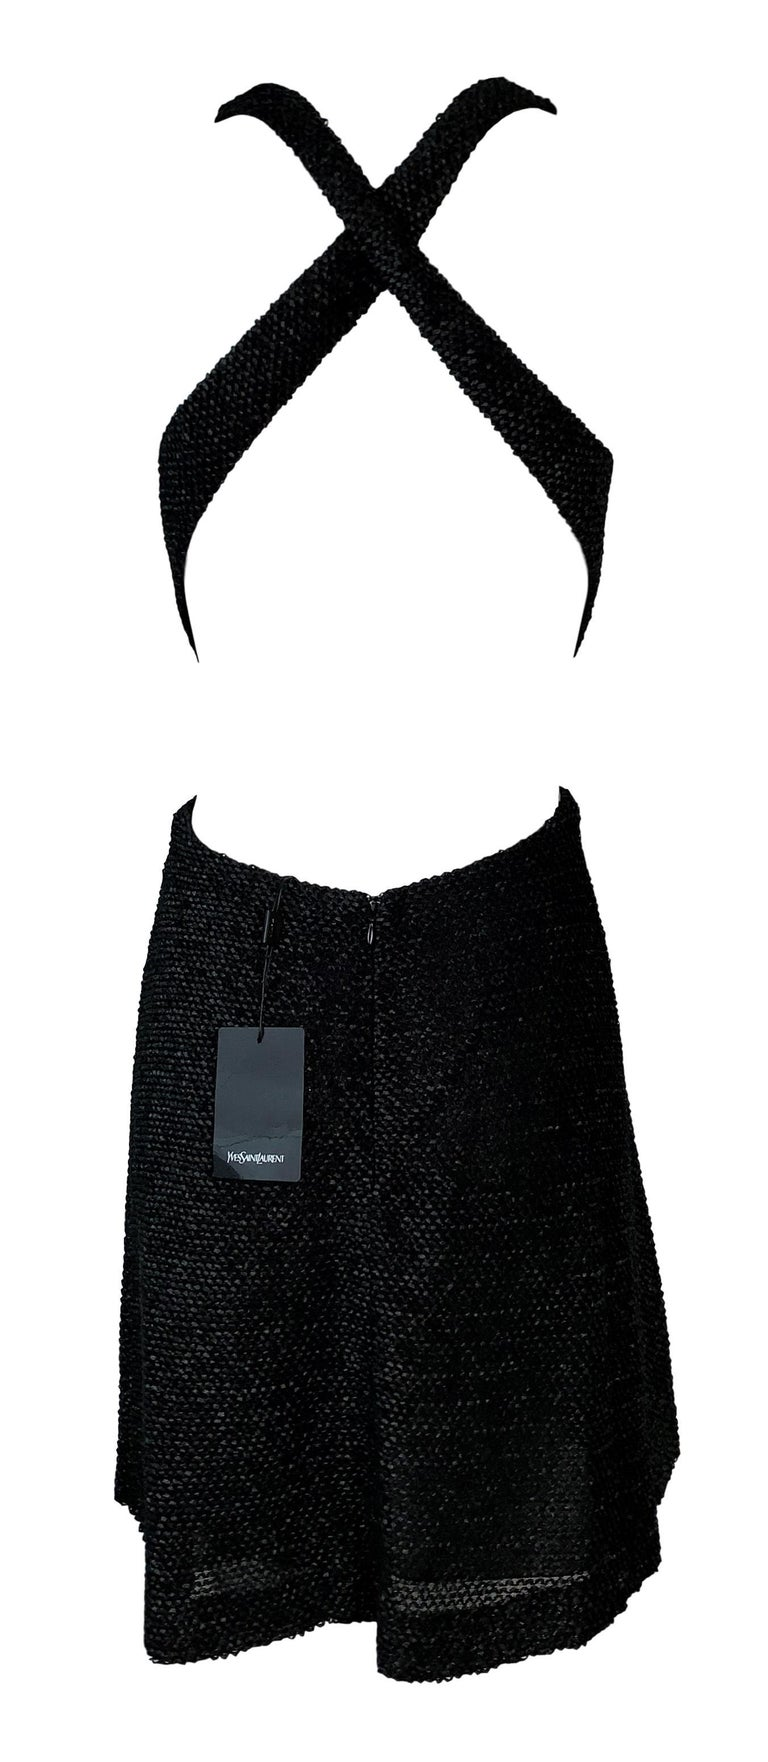 NWT S/S 2011 Yves Saint Laurent Black Cut-Out Woven Mini Dress In New Condition For Sale In Yukon, OK